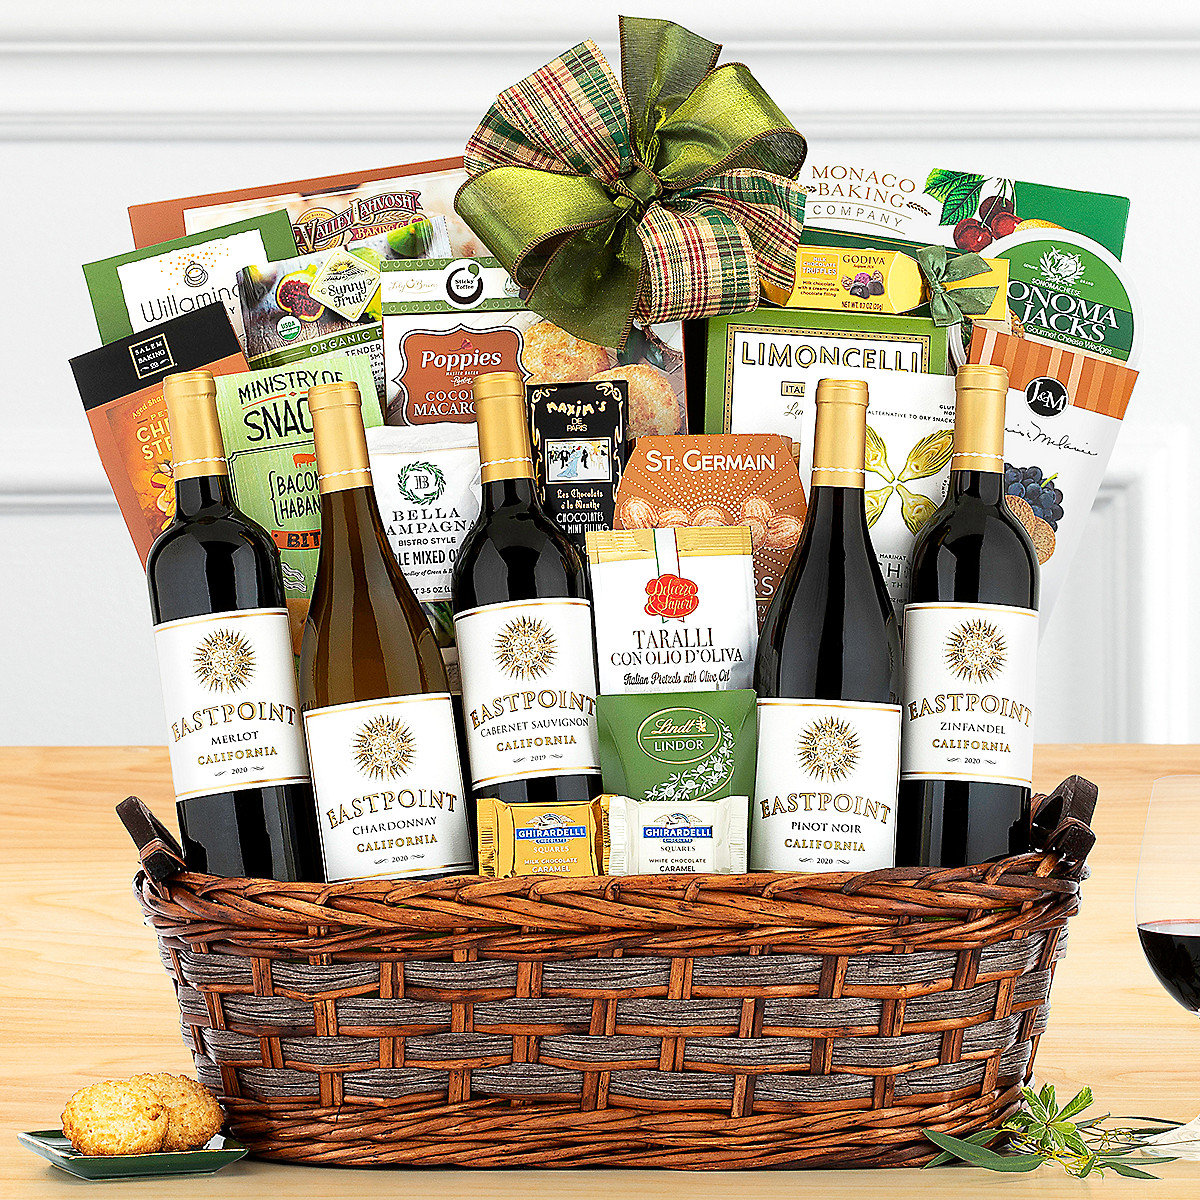 Buy holiday gift baskets with free shipping - Eastpoint Cellars California Free Shipping Wine Gift Baskets